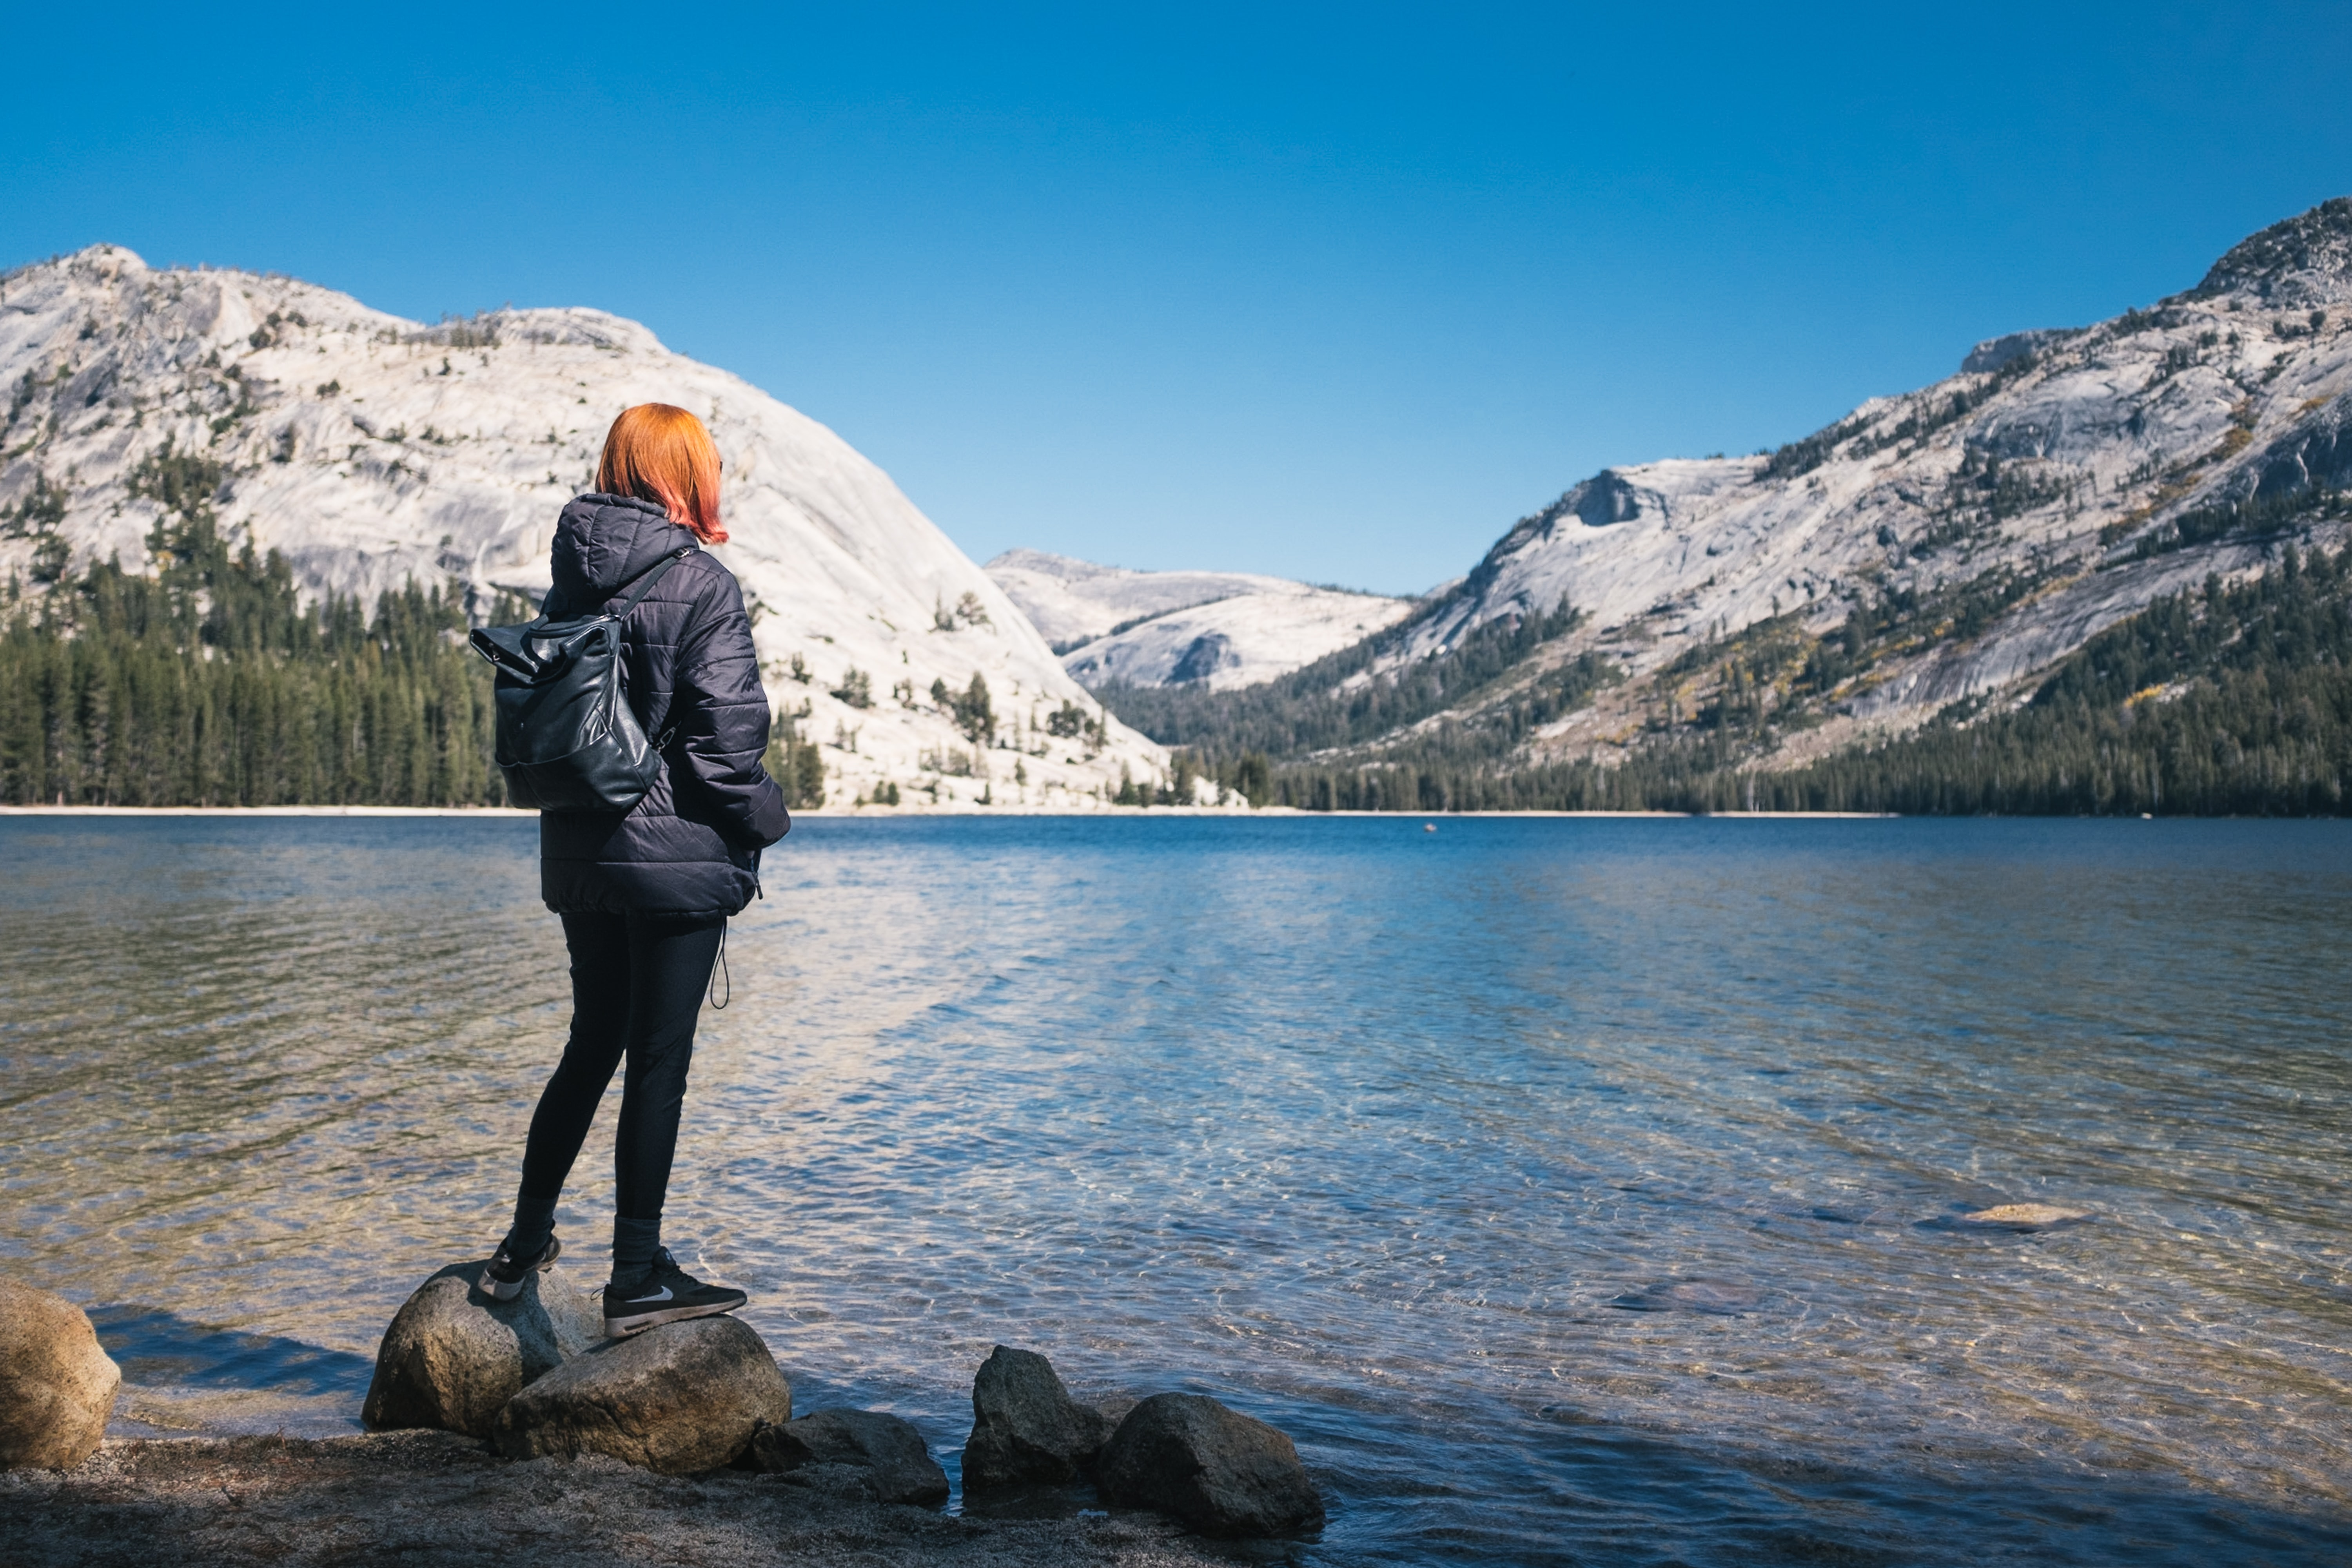 woman wearing black bubble jacket beside lake near hills covered with snow during daytime